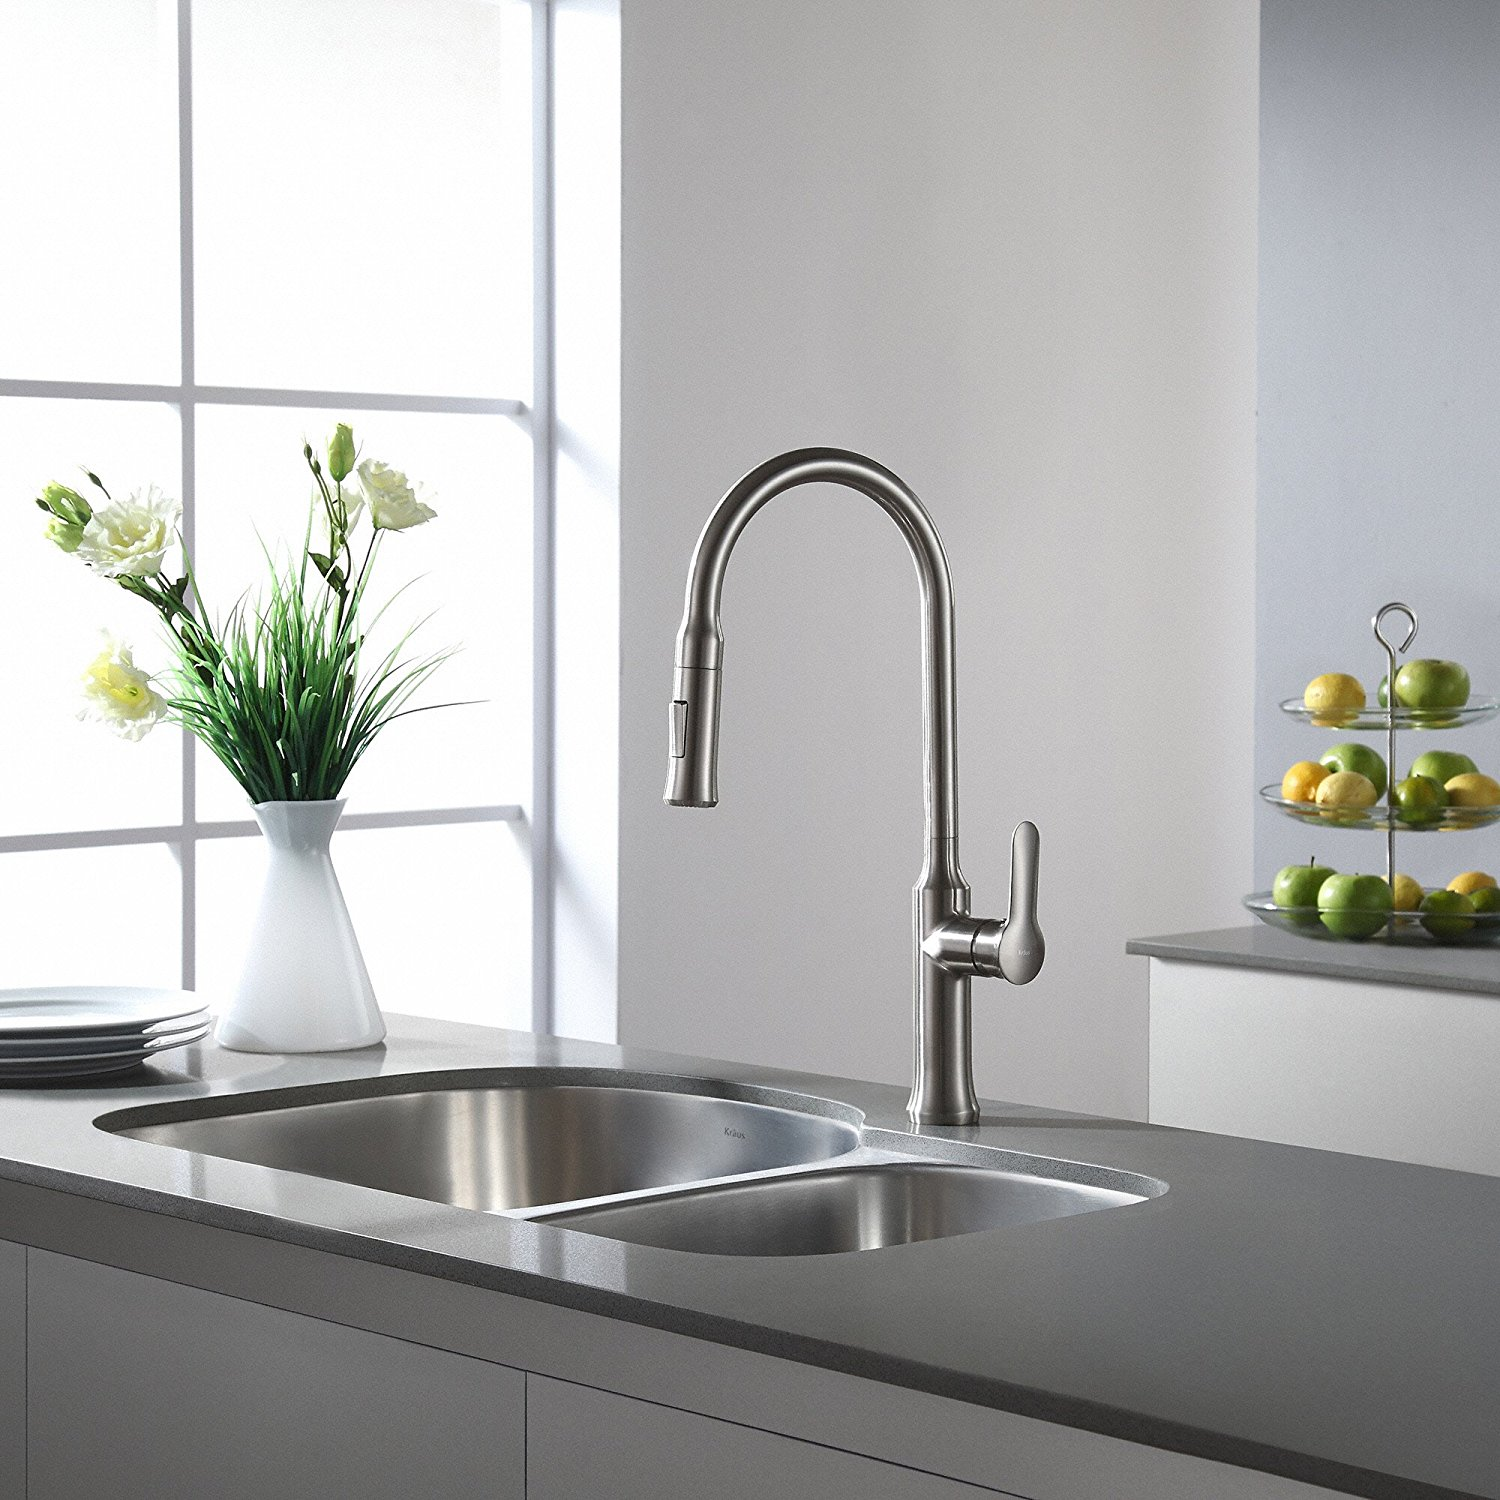 Best Kraus Faucet Reviews (2019) – Which One Should You Get?